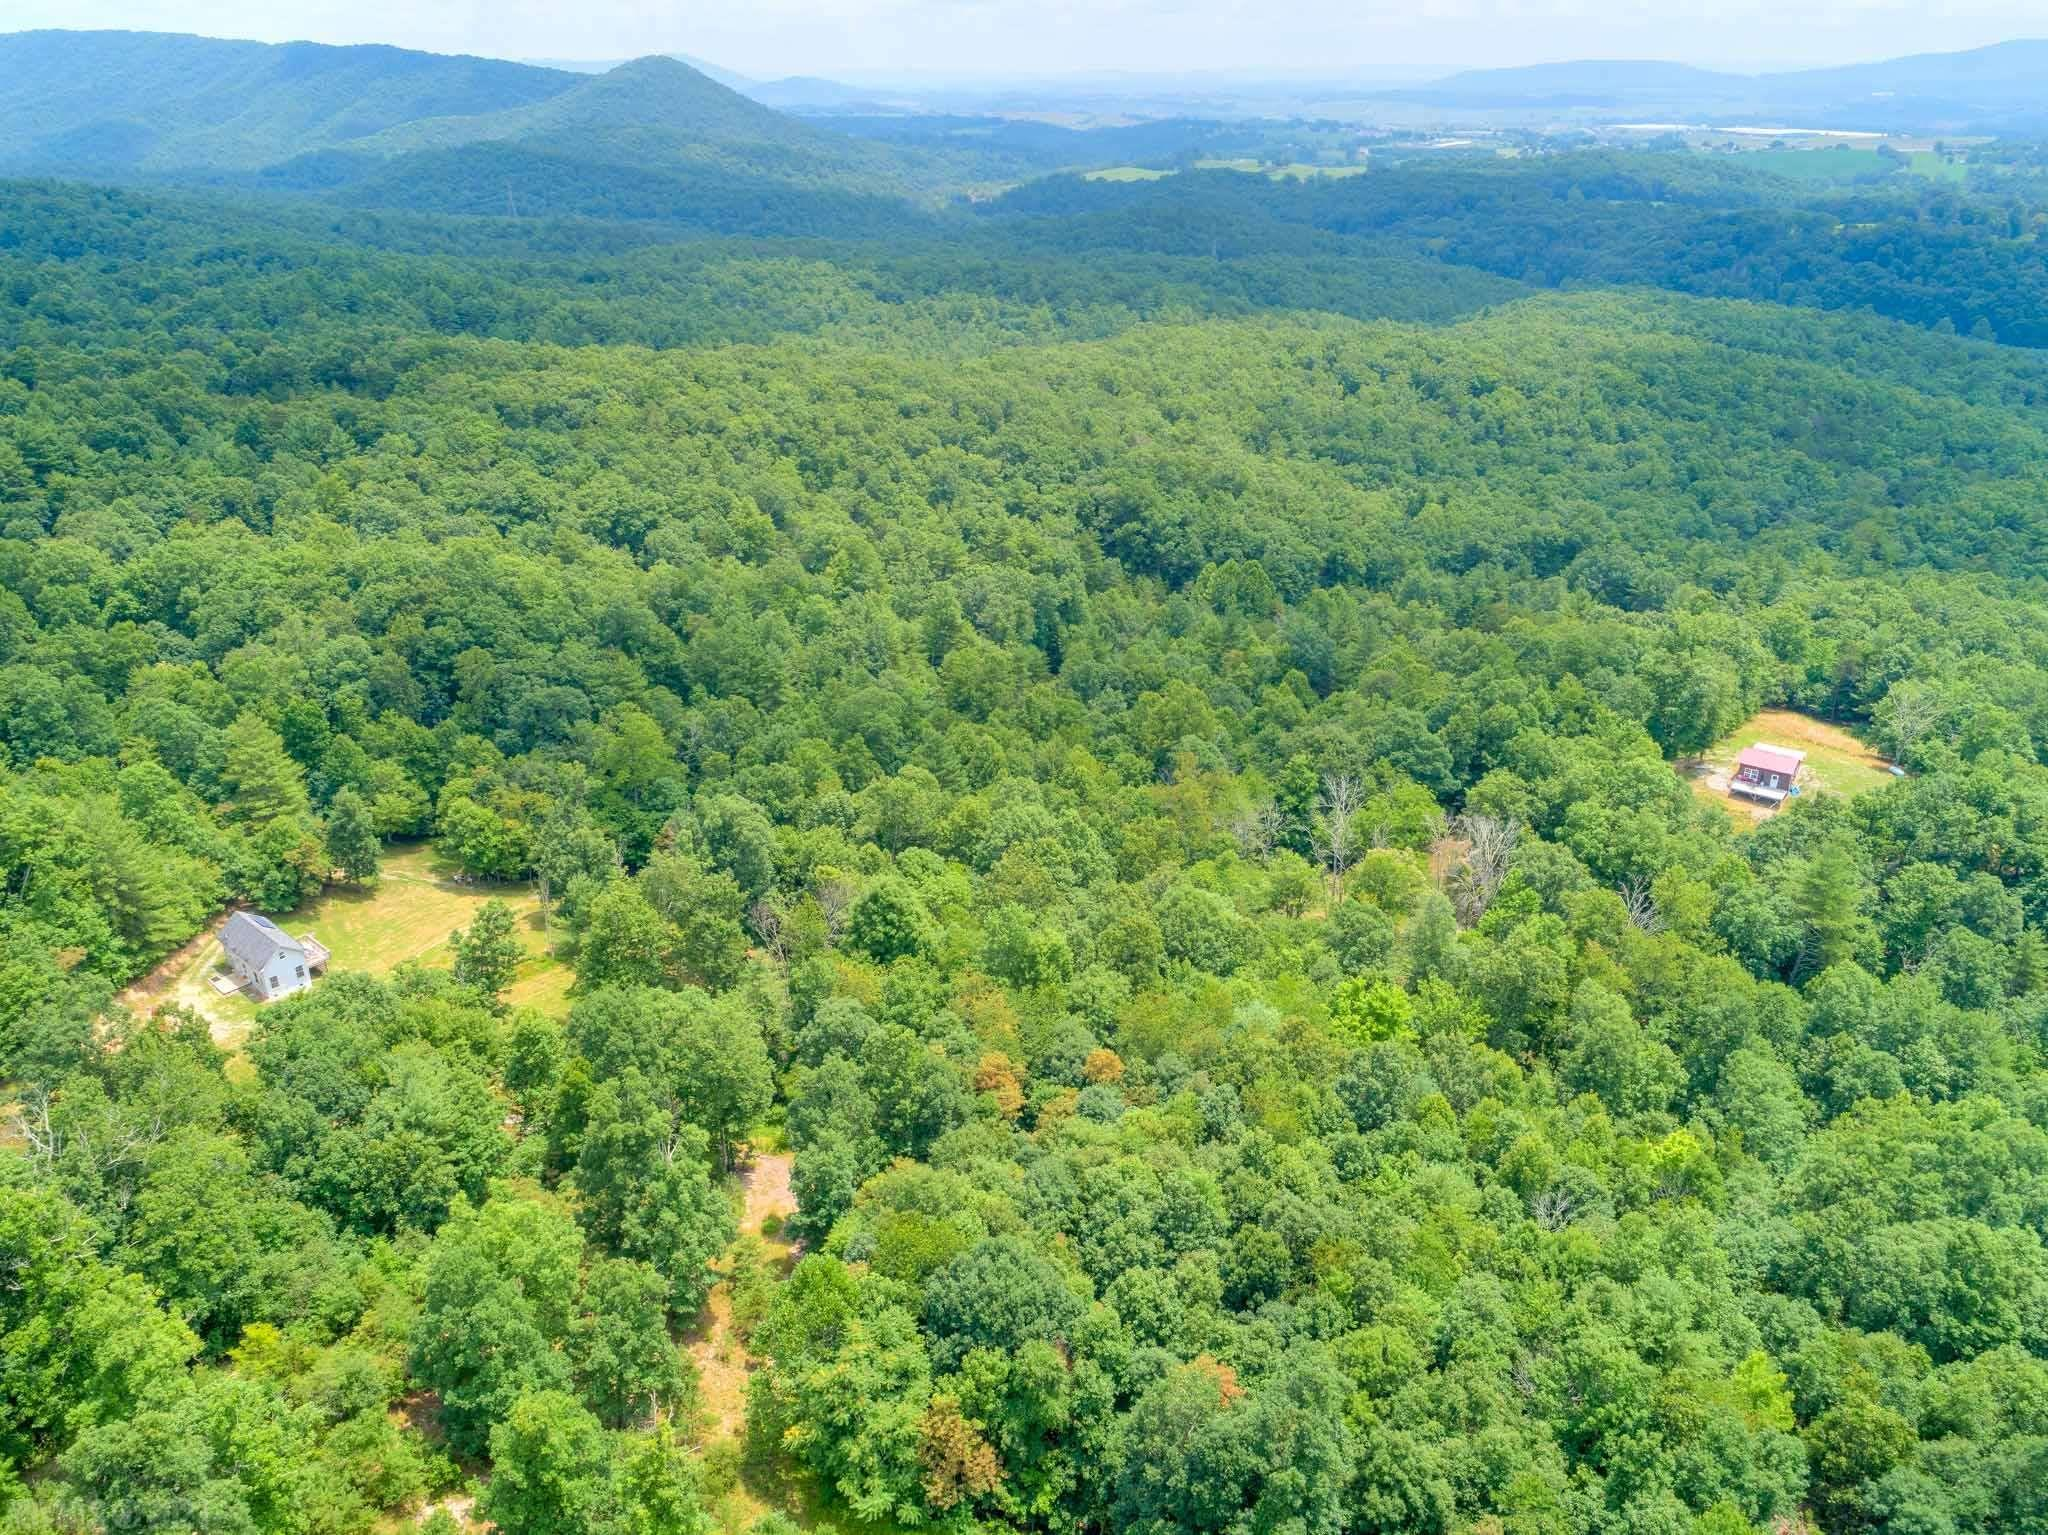 """Are you looking for a great place to unwind, hunt, hike & enjoy being off the grid? Then look no further! This 91 acre tract includes 2 """"off the grid"""" homes that have an artesian well, solar power, propane and generator. This would be perfect for a hunting property or weekend getaway. There are trails throughout the property & wildlife abound. It's peaceful, it's private, and it can be yours! Schedule your showing today!  Sellers believe one home was built in 2009 & the other 2012. The homes are being sold as is - everything conveys."""